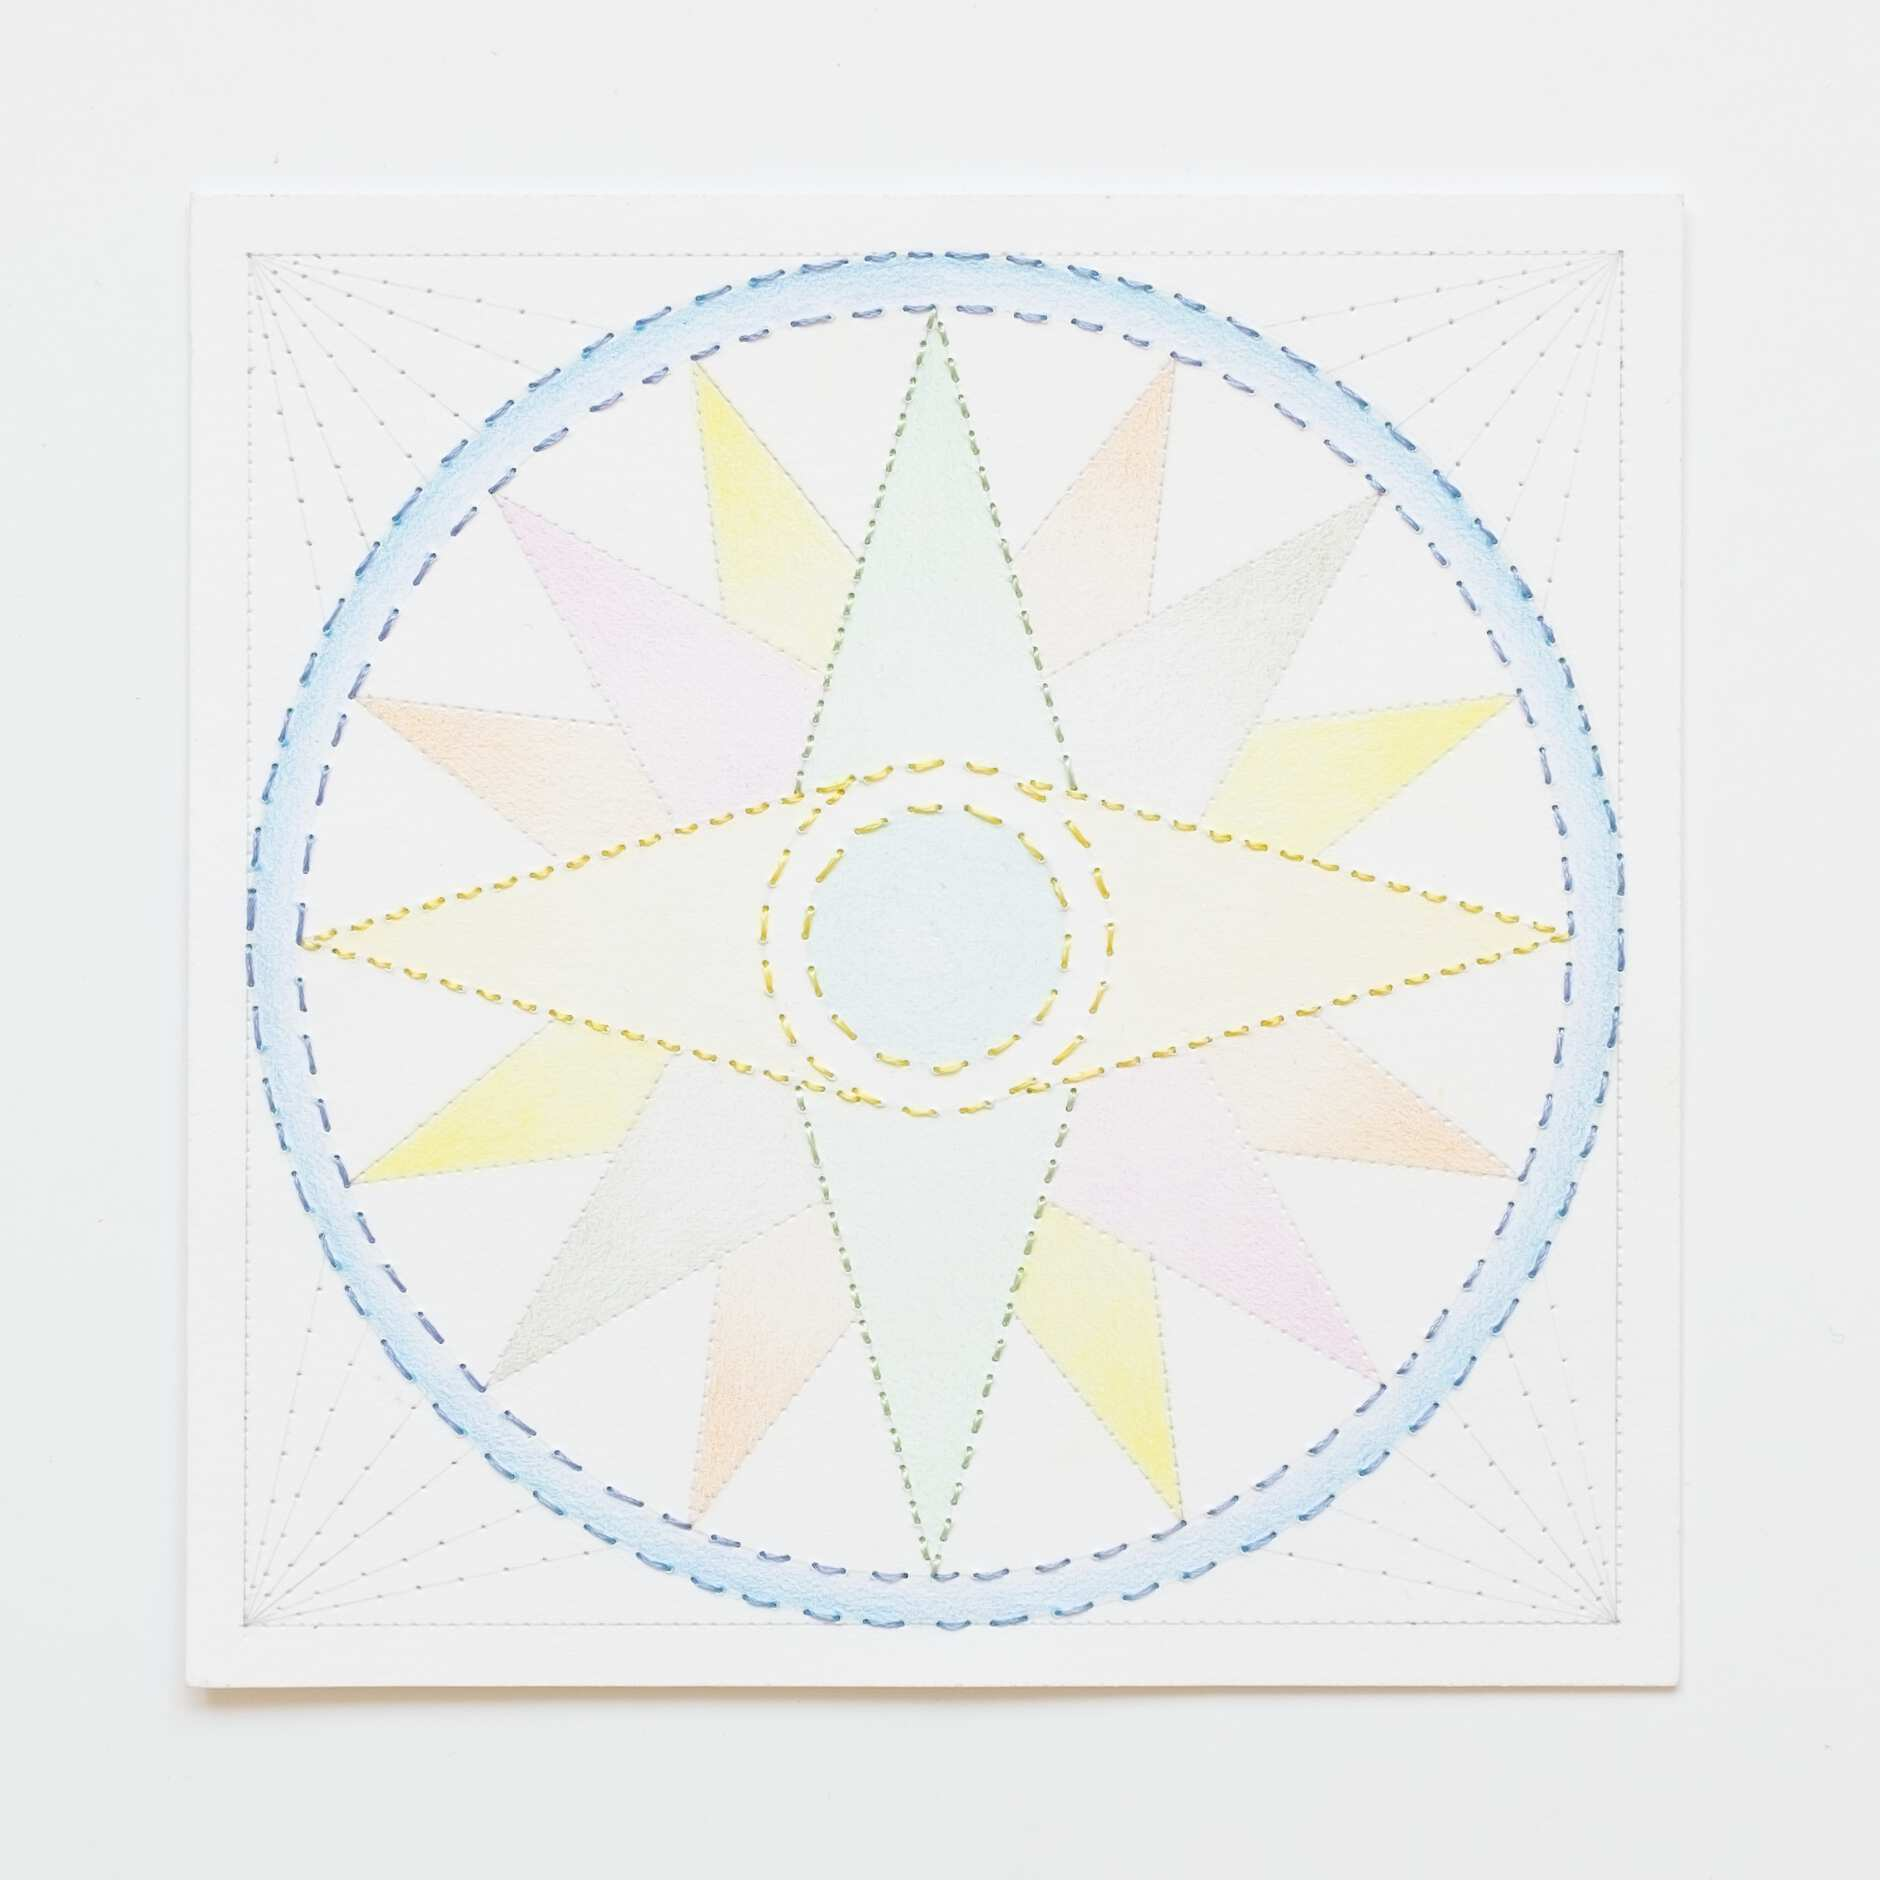 Quilted Composition [white // compass], Hand-embroidered silk on paper, pencil, coloured pencil, 2019